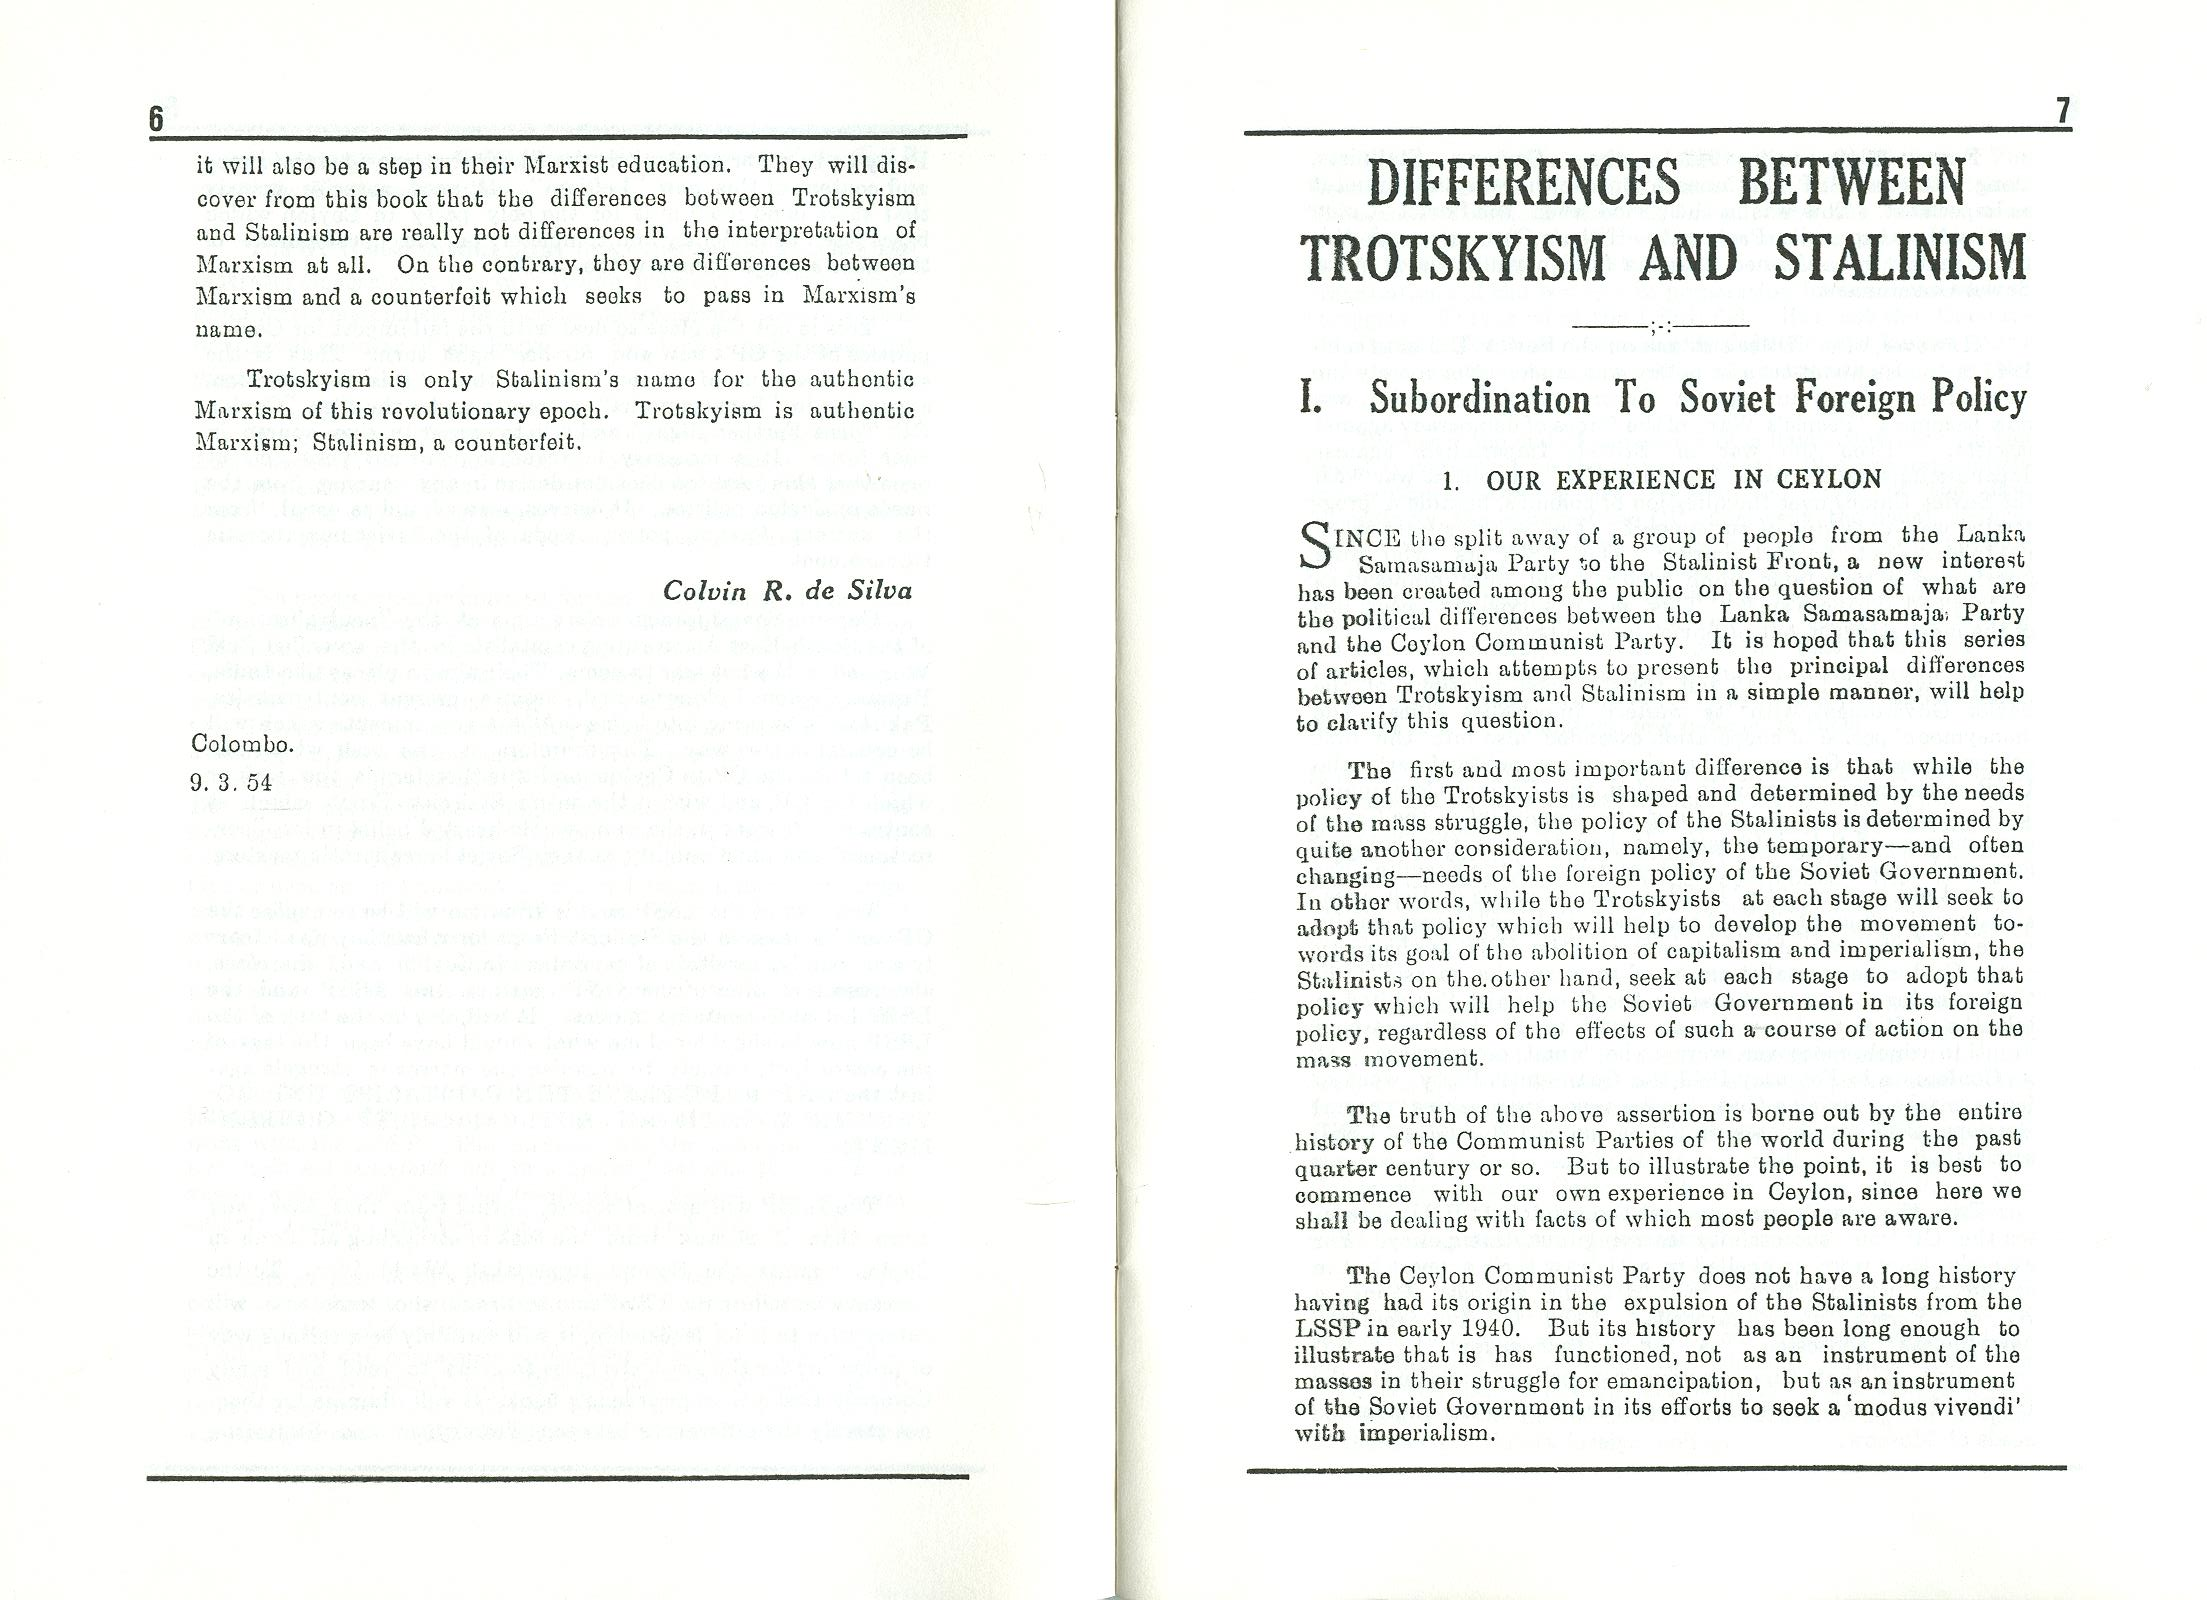 Leslie Goonewardene, The Differences between Trotskyism and Stalinism [1954] (1995) - pag. 5